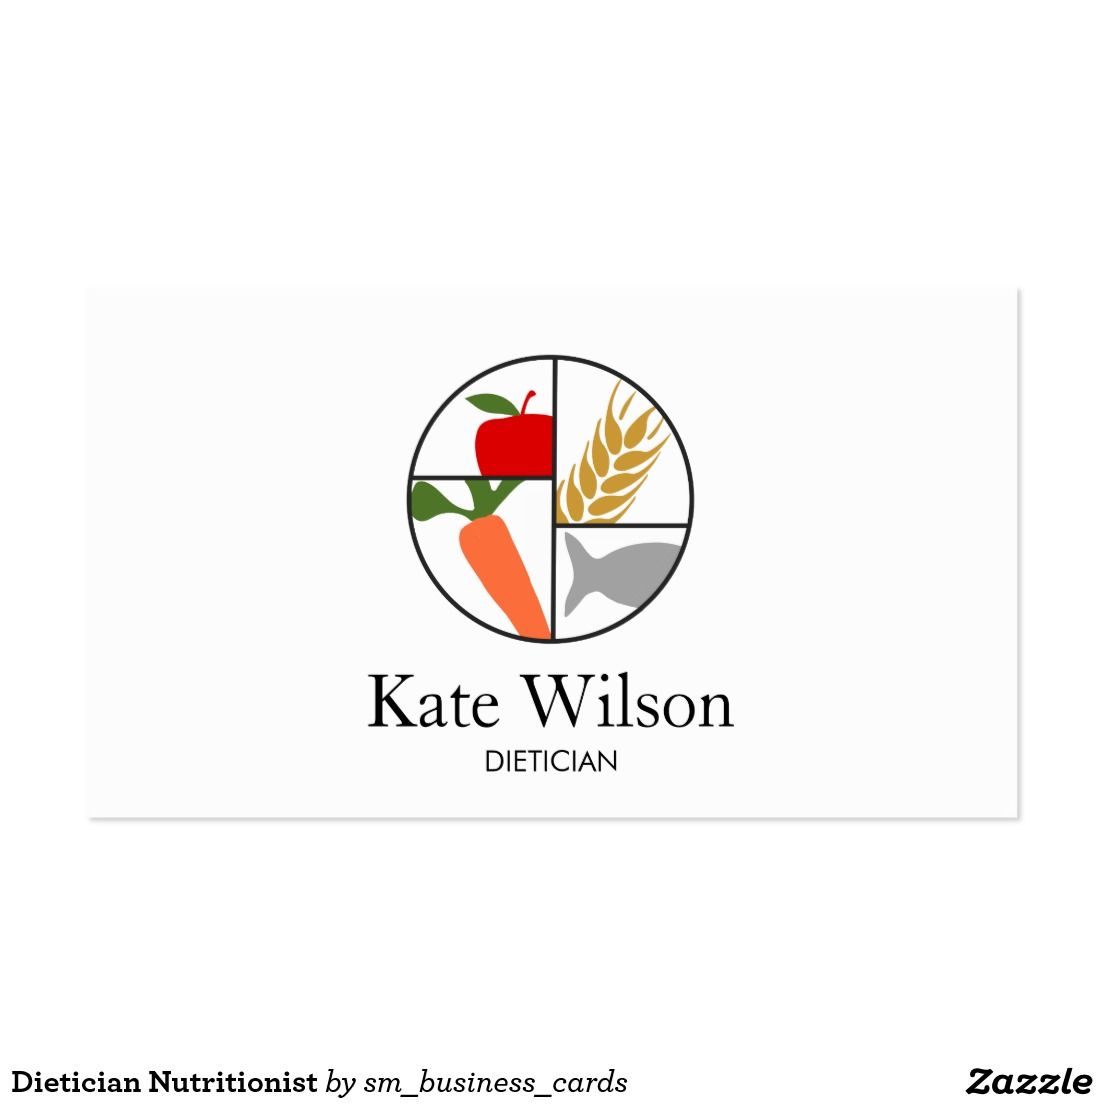 Dietician nutritionist business card food and beverage catering dietician nutritionist business card colourmoves